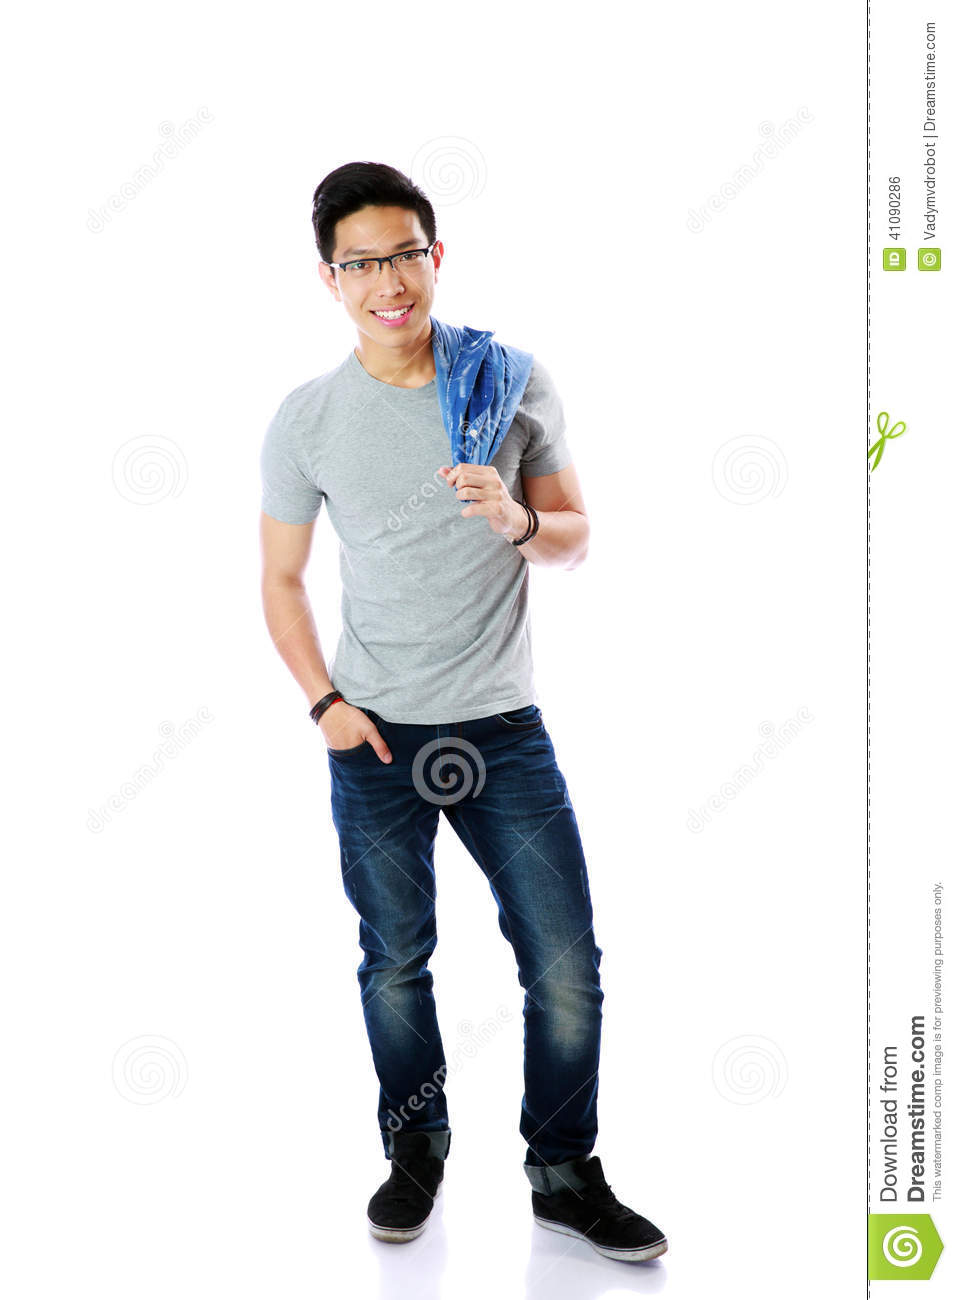 Full Length Portrait Of A Casual Man Standing Stock Photo